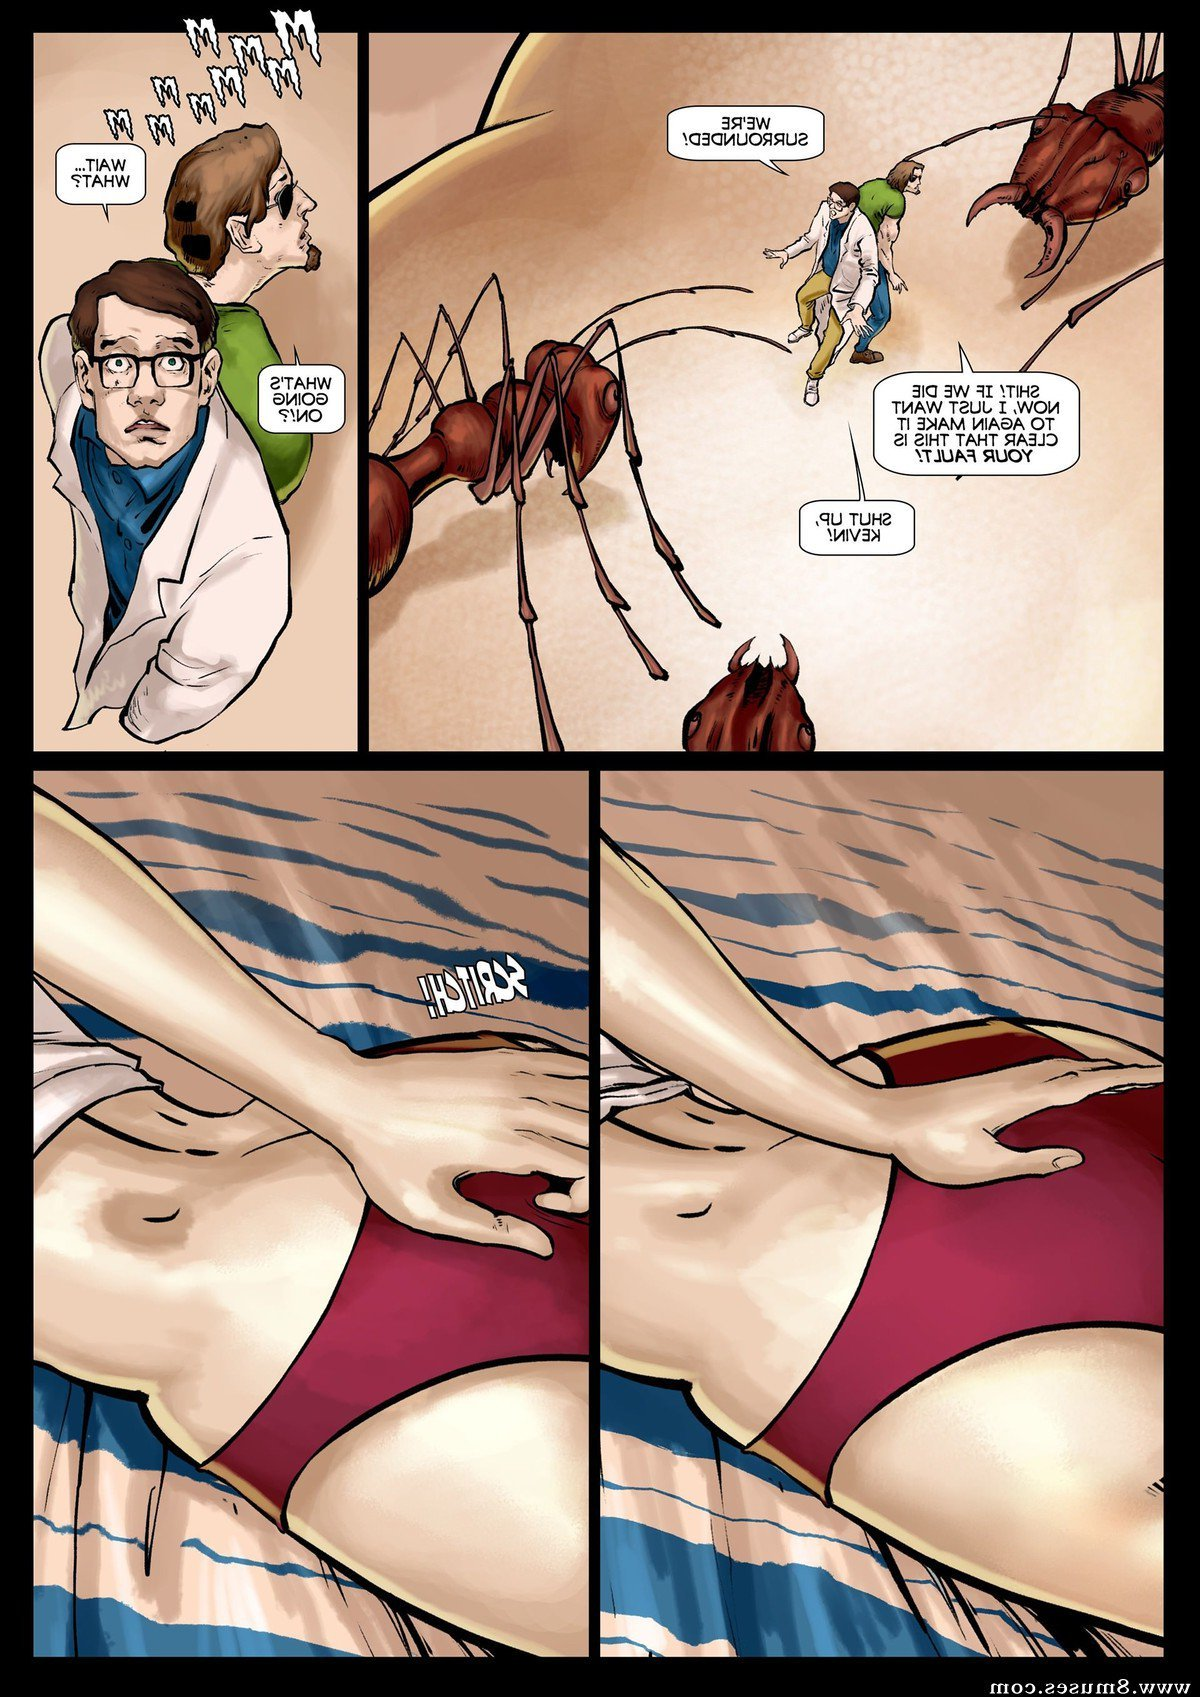 Giantess-Fan-Comics/Mandy-I-Shrunk-Myself/Issue-2 Mandy_I_Shrunk_Myself_-_Issue_2_14.jpg